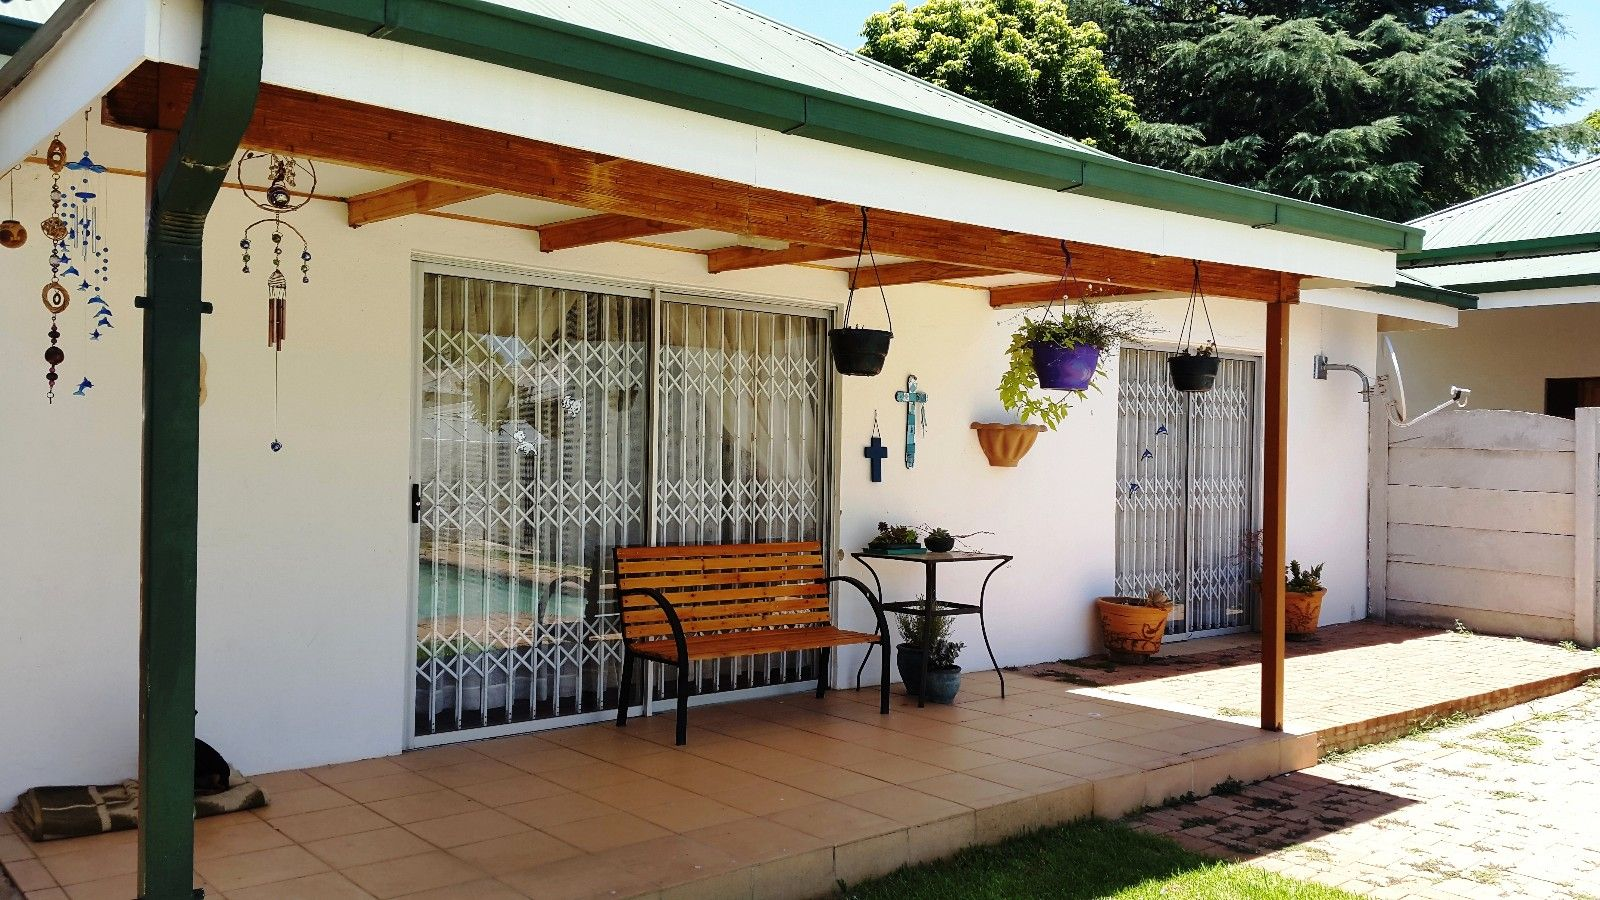 Potchefstroom Central for sale property. Ref No: 13460775. Picture no 17